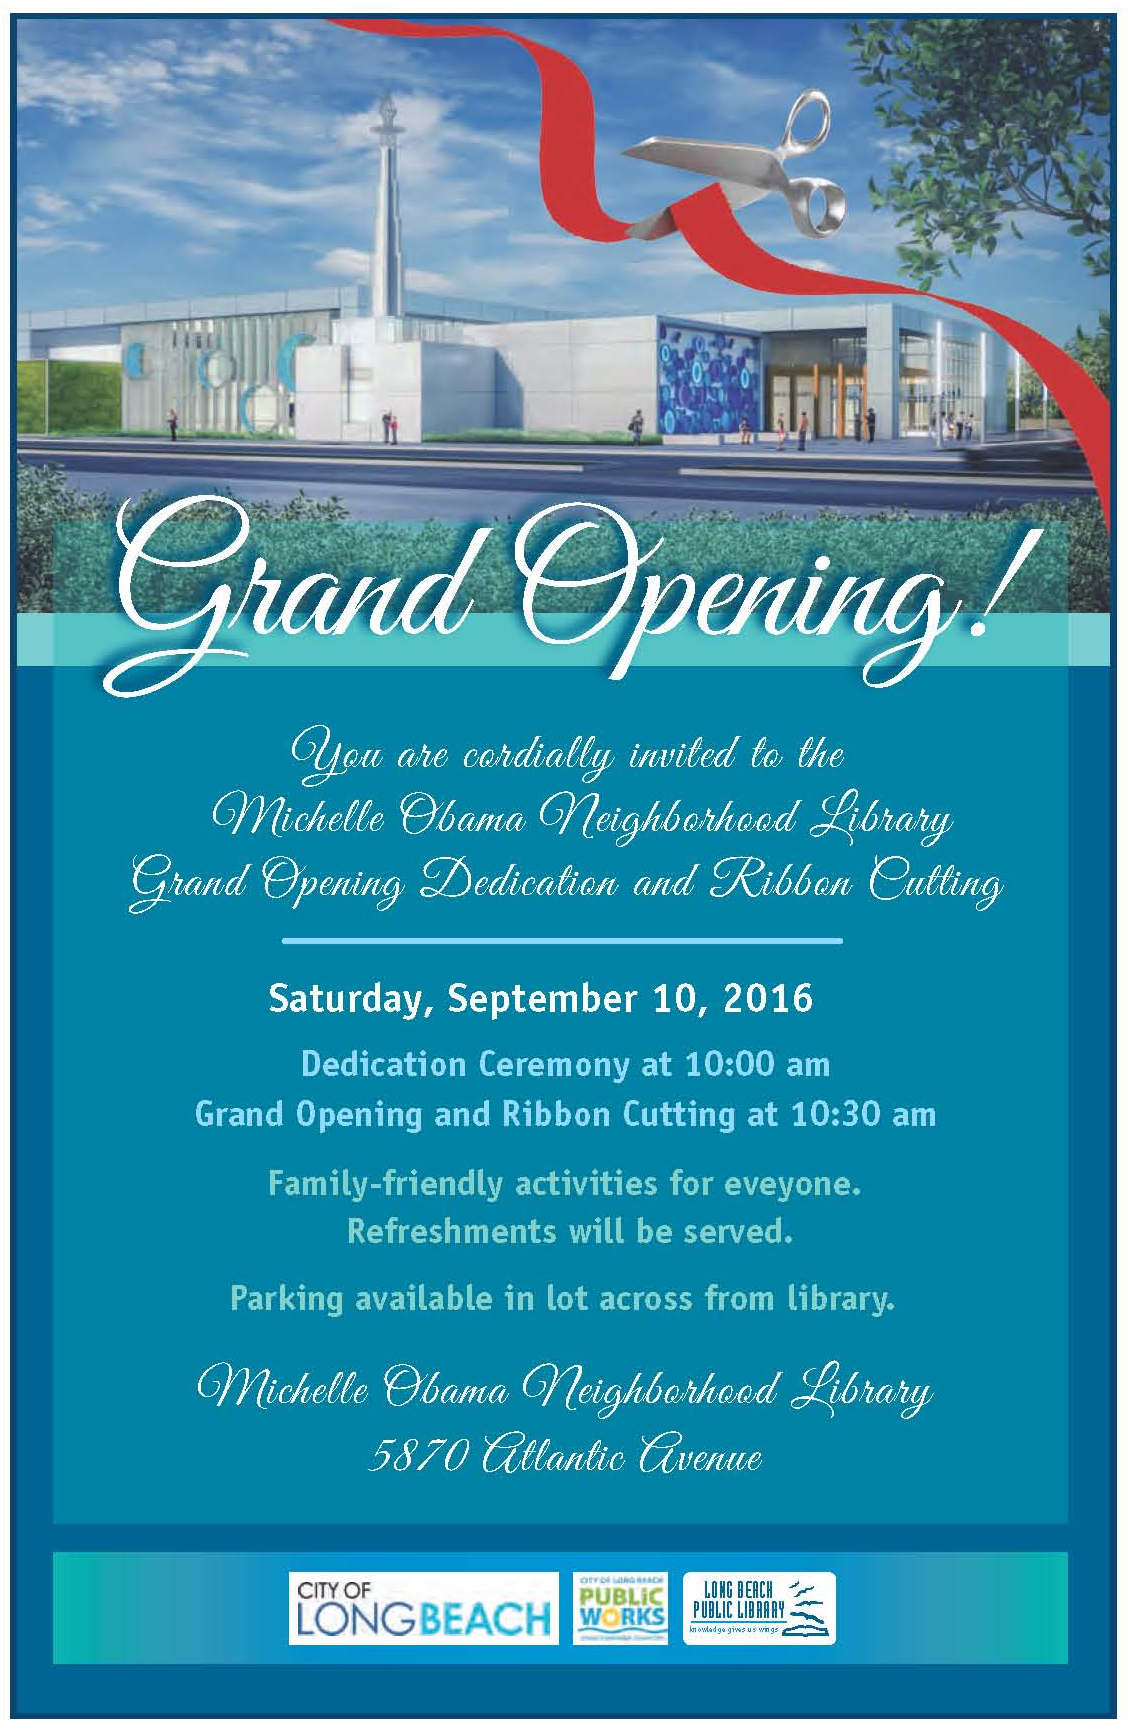 library_grand_opening_flyer_edited_less_border.png